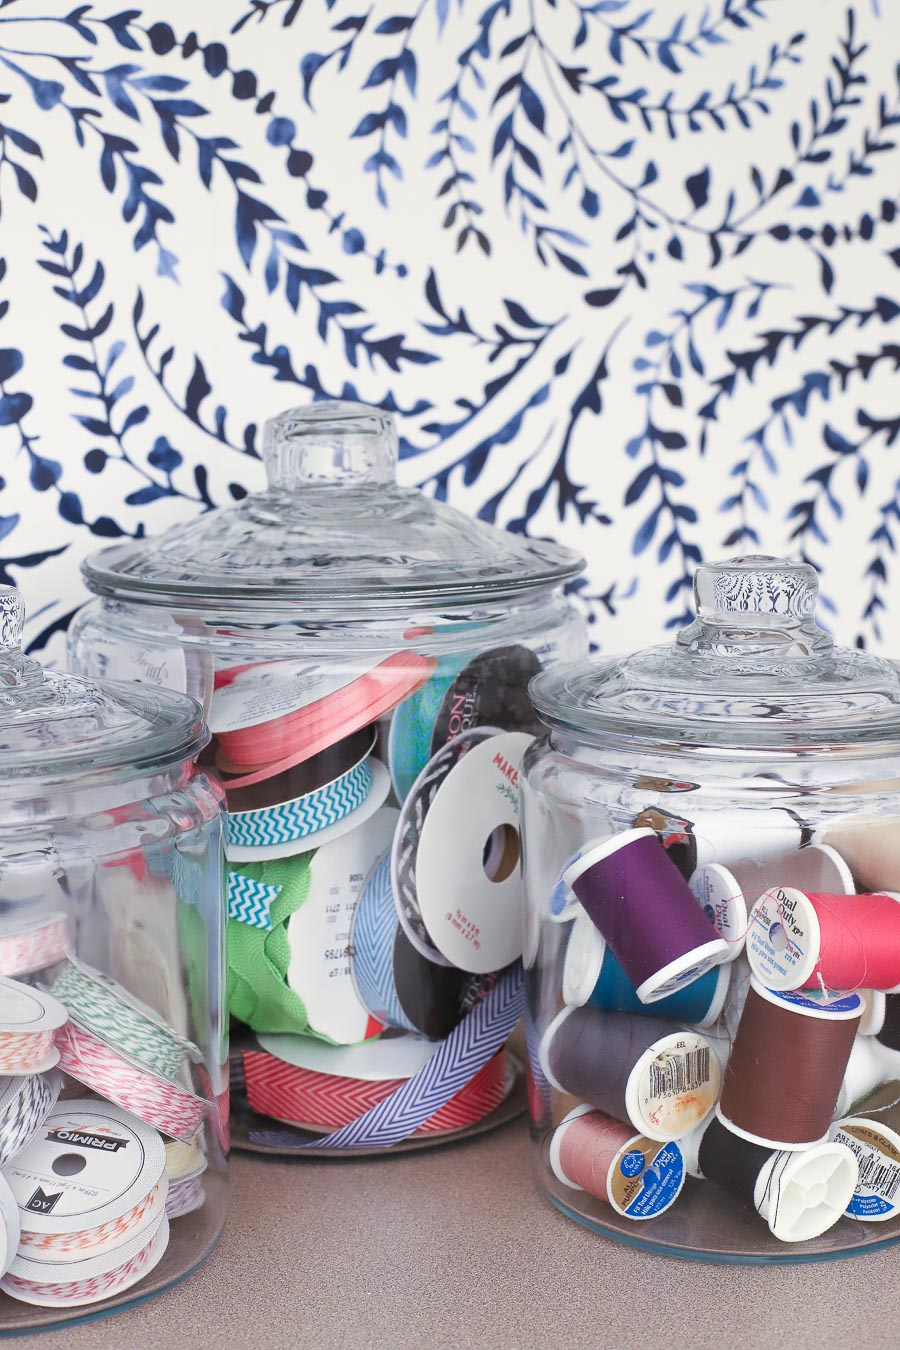 Glass storage jars hold ribbons and thread in this cute craft room!